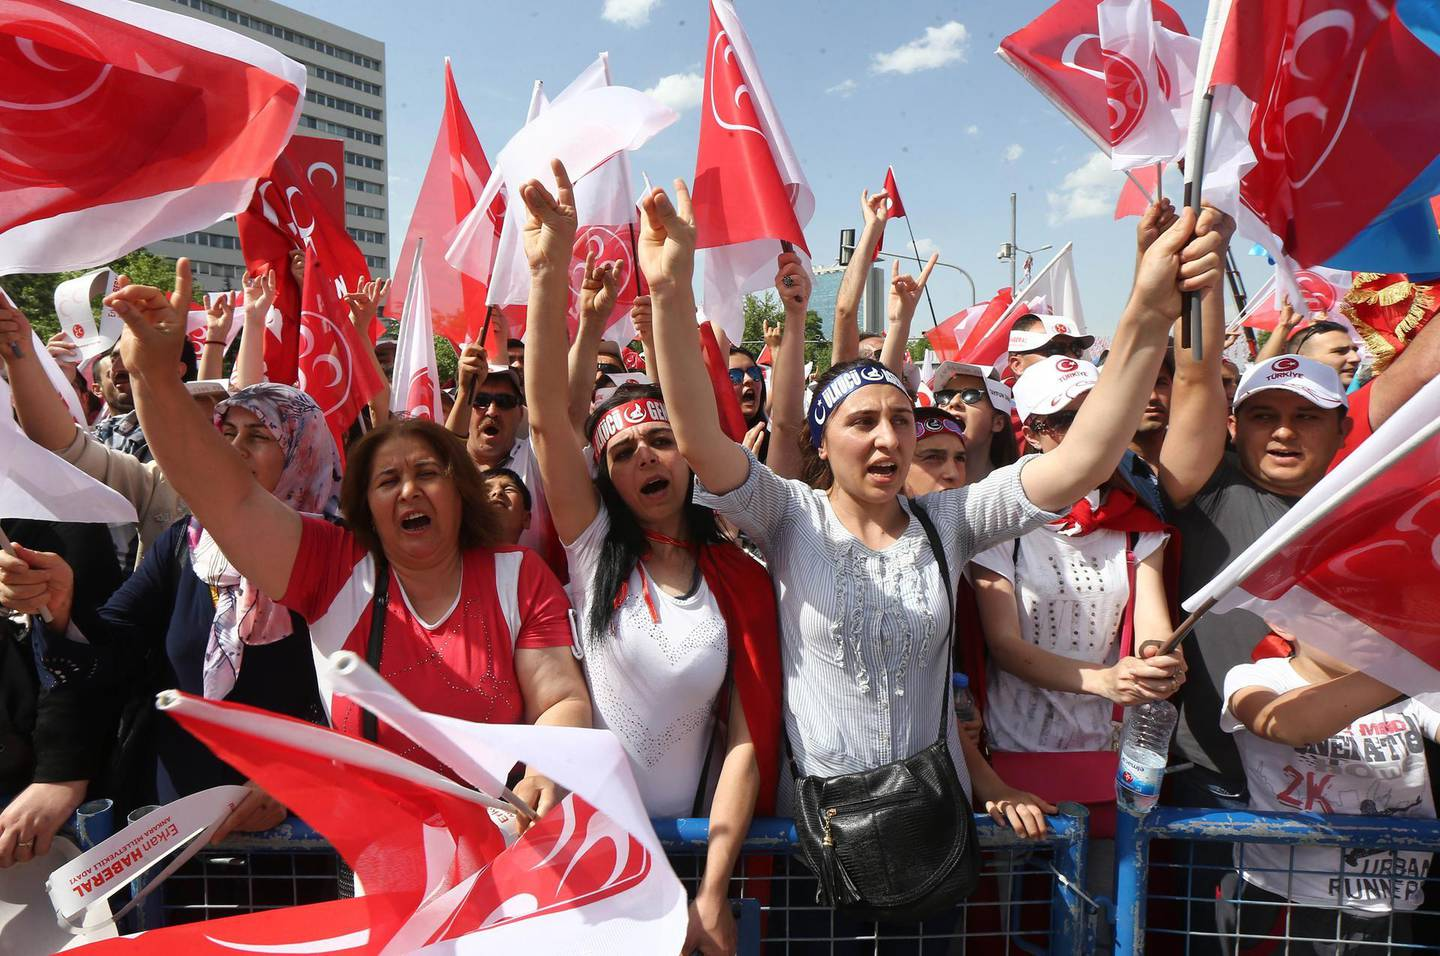 """People gestures the """"Grey Wolves"""" salutation and wave flafs during an election rally of Turkey's opposition Nationalist Action Party (MHP) May 24, 2015 in Ankara, ahead of the June 7 general elections. AFP PHOTO/ADEM ALTAN (Photo by ADEM ALTAN / AFP)"""